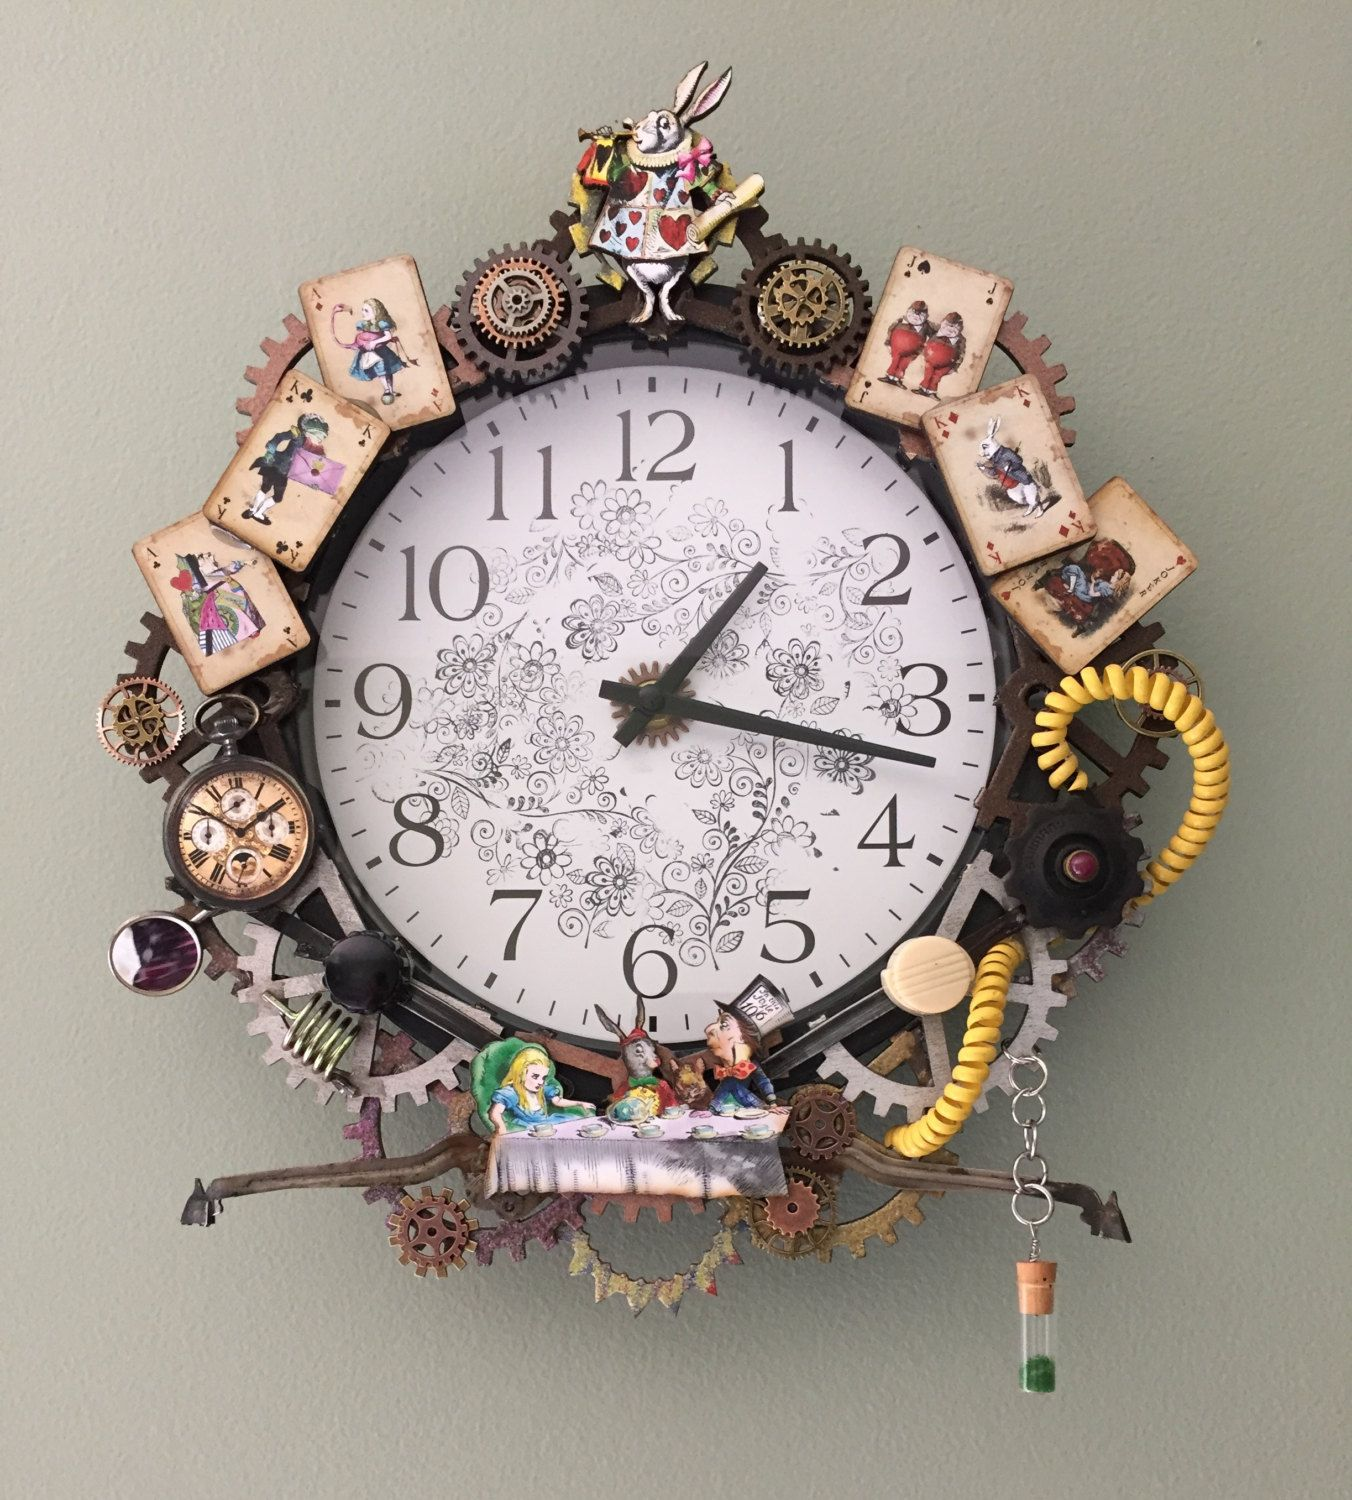 Embellished clock wall clock upcycled repurposed steampunk embellished clock wall clock upcycled repurposed steampunk wooden and metal amipublicfo Images